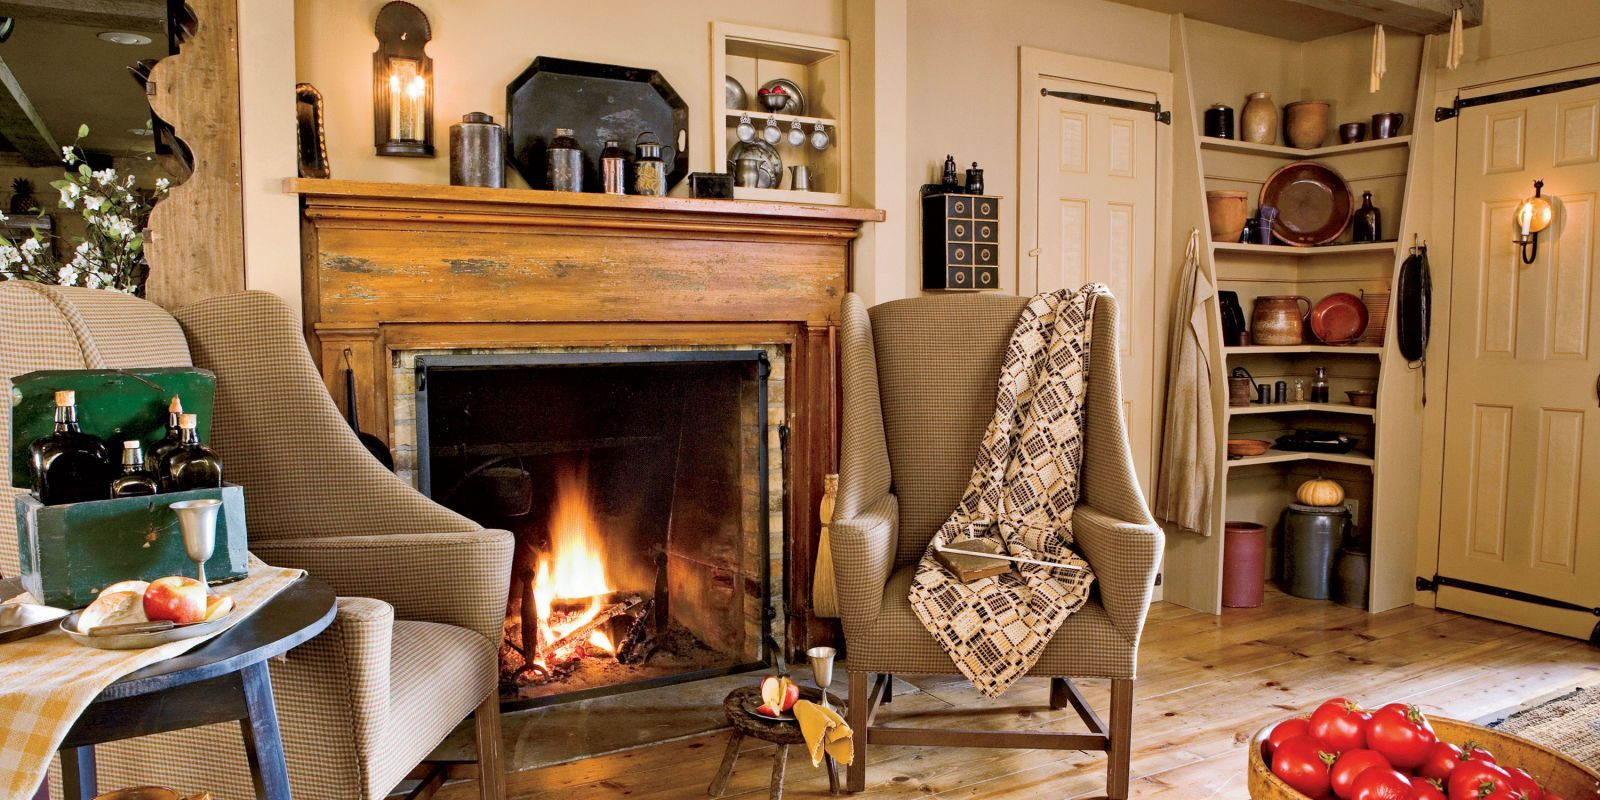 42 Cozy Country Ideas for Your Fireplace | Fireplace mantel, Mantels Kitchen Fireplace Mantel Ideas on fireplace mantels product, fireplace mantels wood, crown molding ideas, table ideas, fireplace surround ideas, stone fireplace ideas, fireplace inserts, fireplace fronts ideas, fireplace tile, kitchen ideas, fireplace mantle, fireplace design ideas, fireplace decorating ideas, windows ideas, fireplace mantels over brick, fireplace outdoor ideas, gas fireplace ideas, fireplace screens, fireplace wall ideas, fireplace with wood storage,